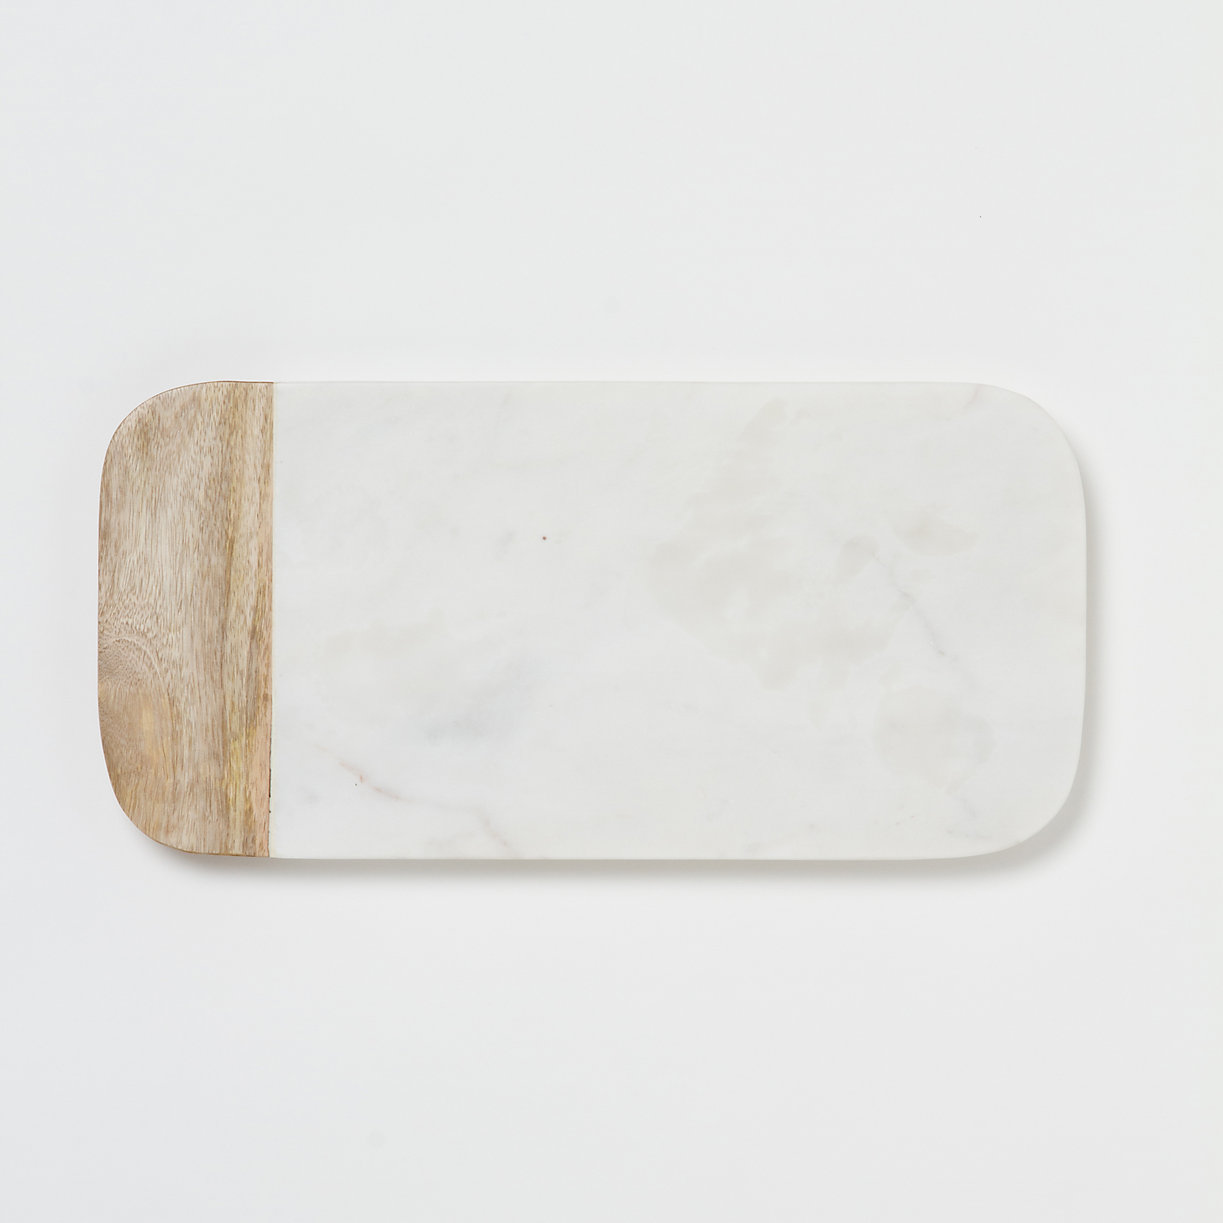 Marble Amp Wood Cheese Board In Entertaining Serving Pieces